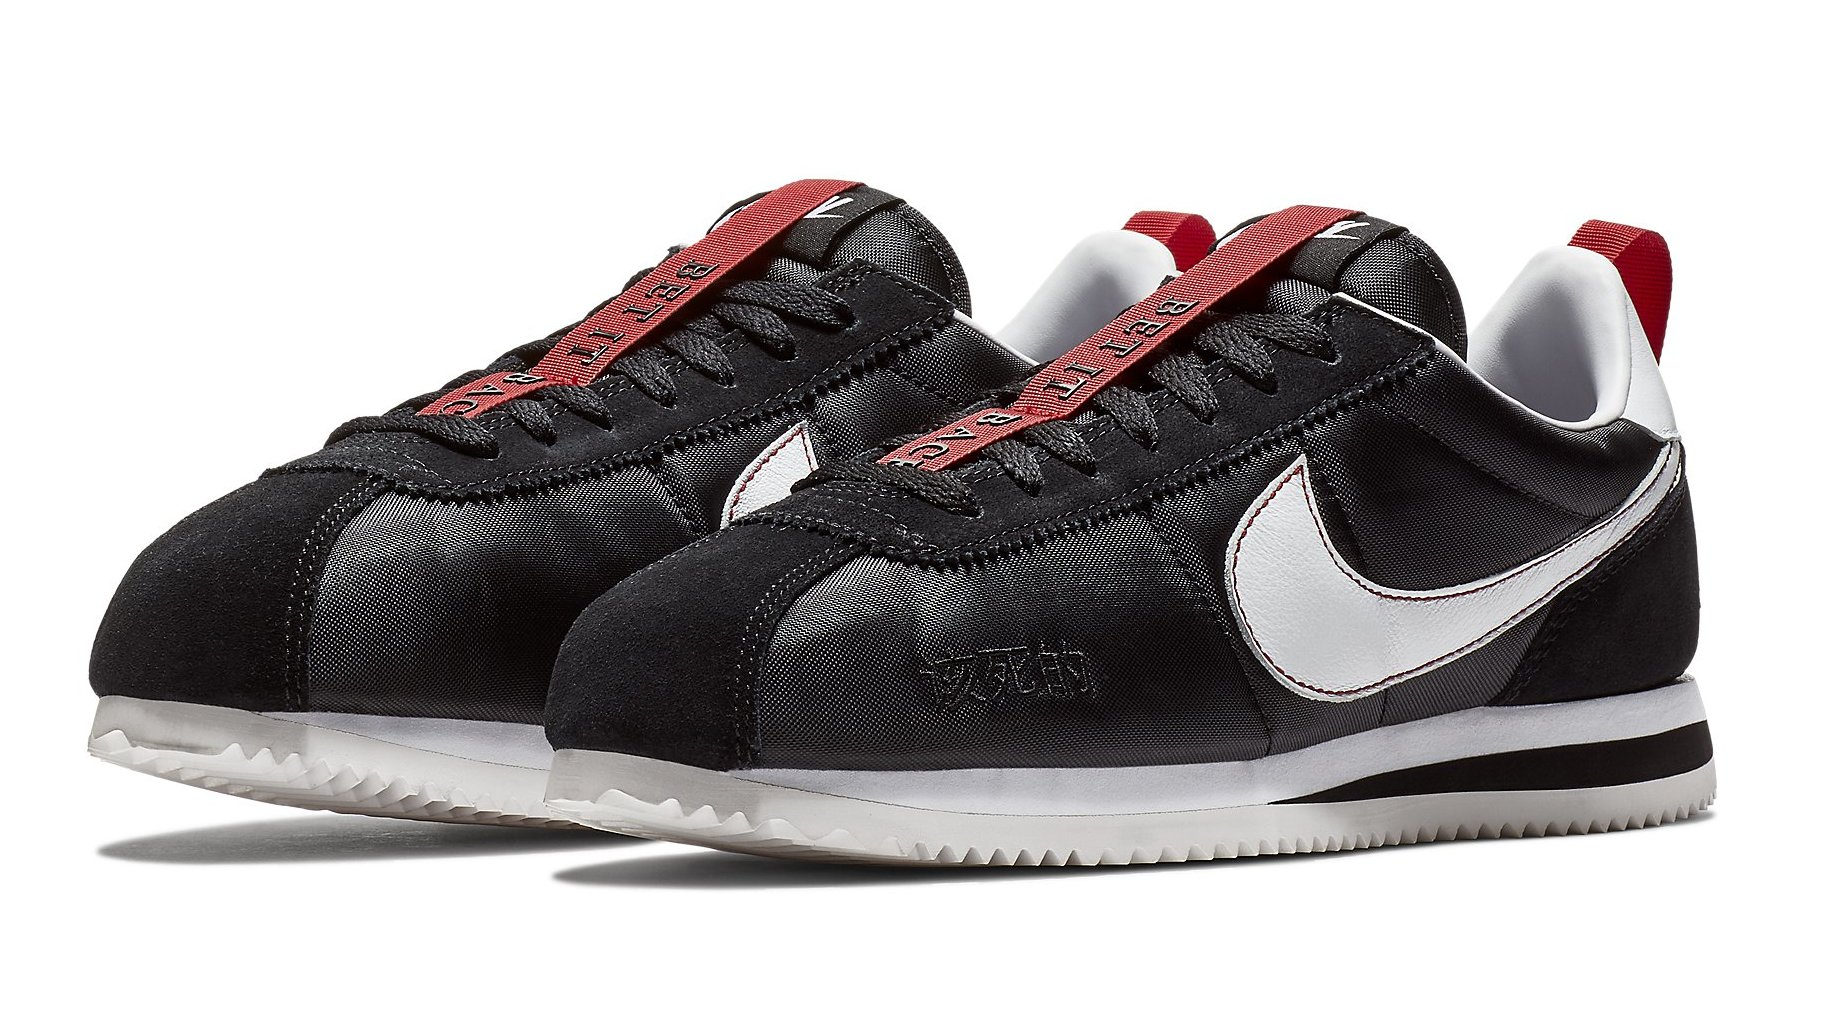 56e7cc53 ... discount code for the nike cortez kenny iii is finally dropping on  snkrs 85472 38f78